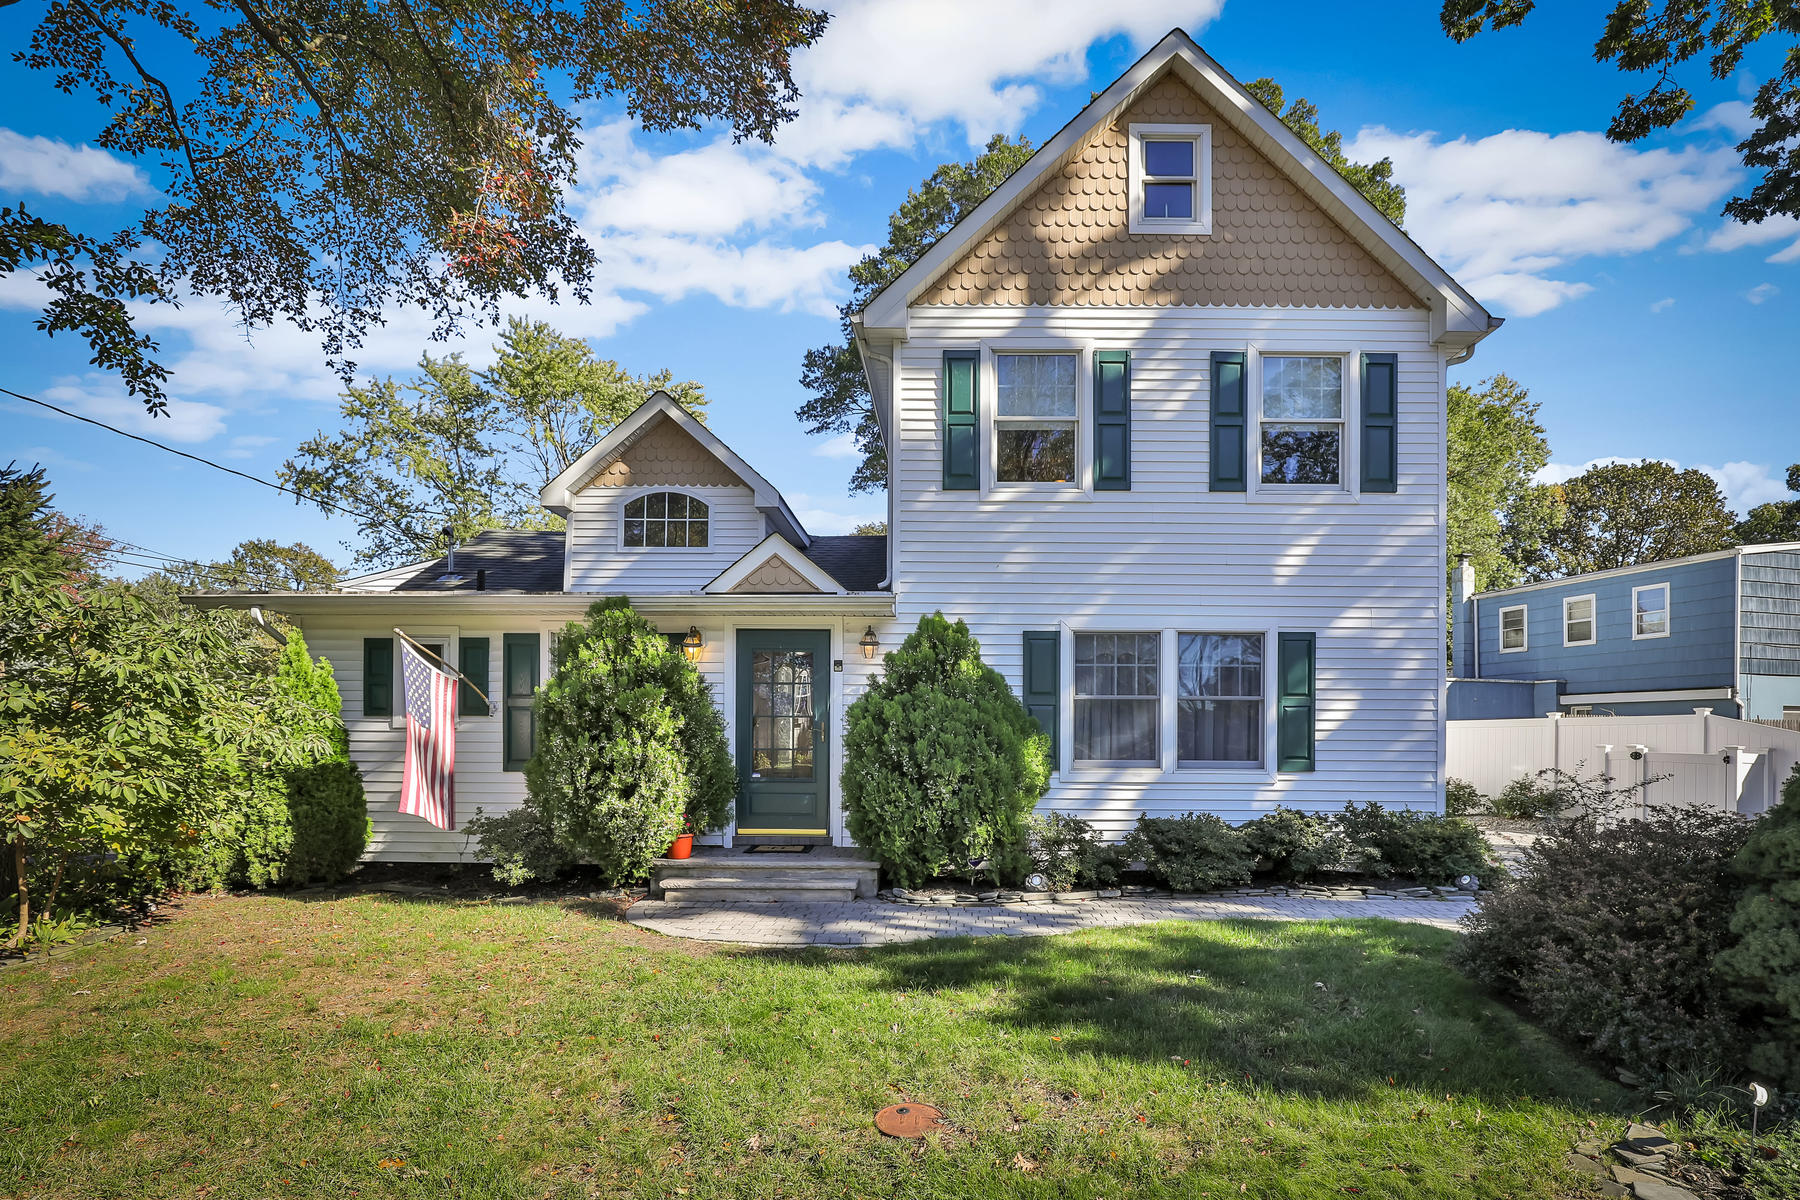 Single Family Home for Sale at Fantastic Custom Home 1626 W Maplewood Road, Wall, New Jersey 07719 United States